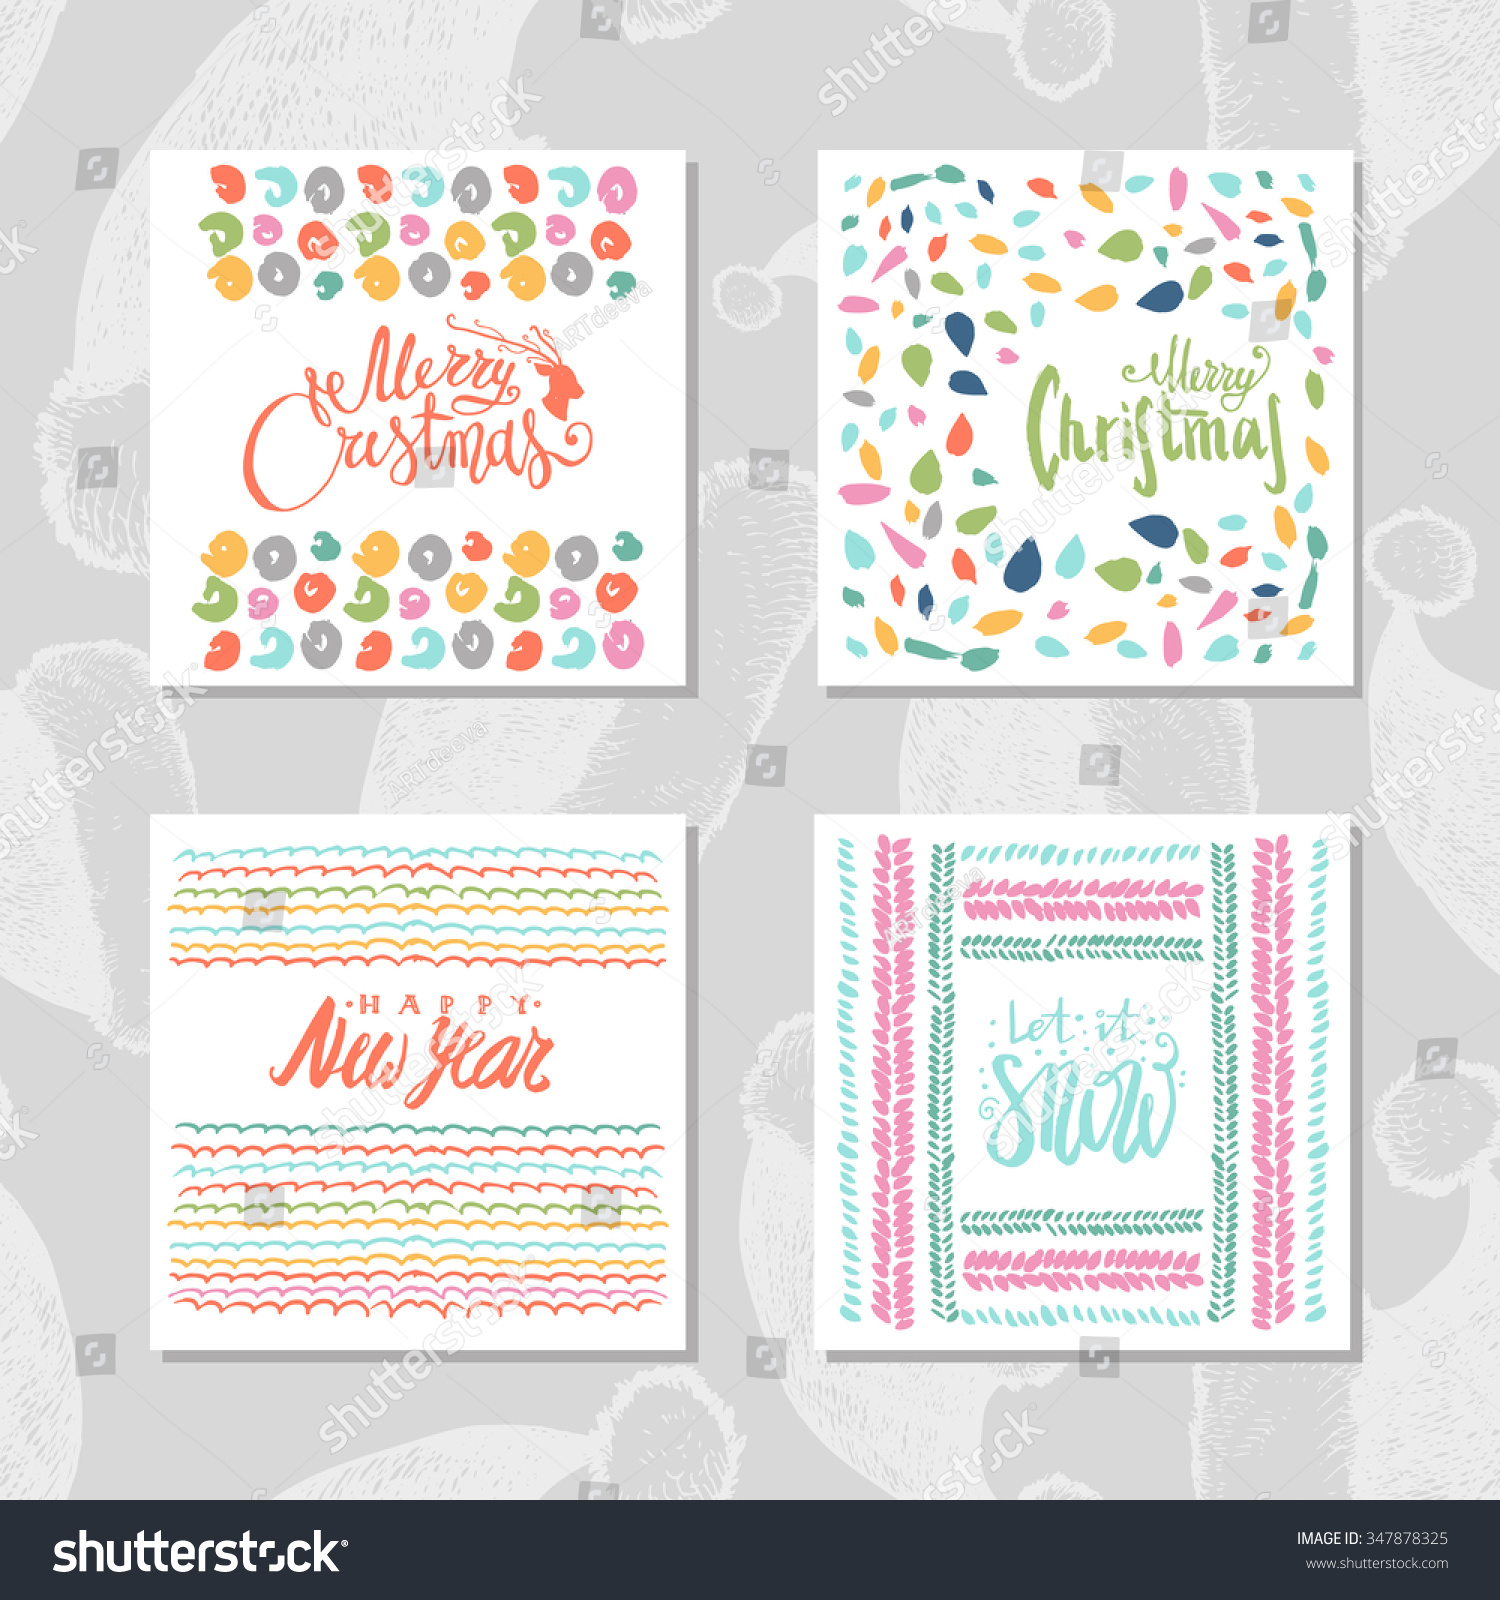 Beautiful Set Christmas Cards Lettering Wishes Stock Vector (Royalty ...